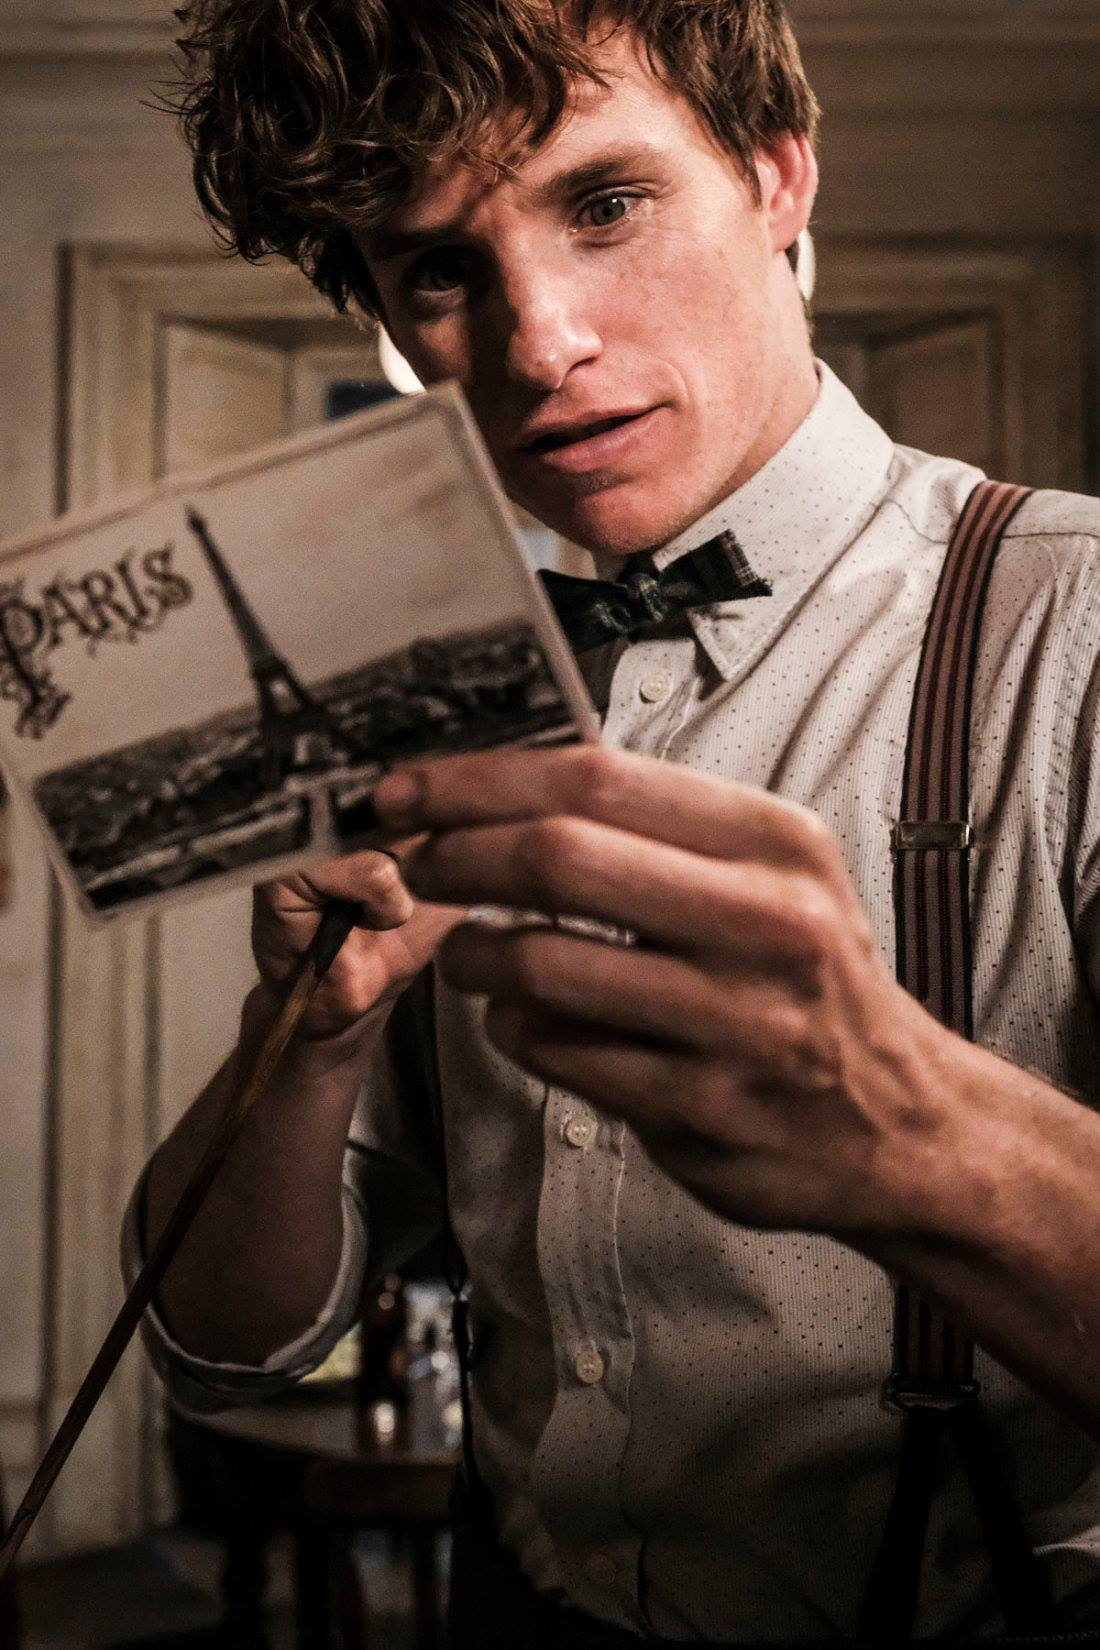 NEW ADVENTURE. Newt Scamander holds an intriguing postcard from Paris. Photo from Facebook.com/pottermore